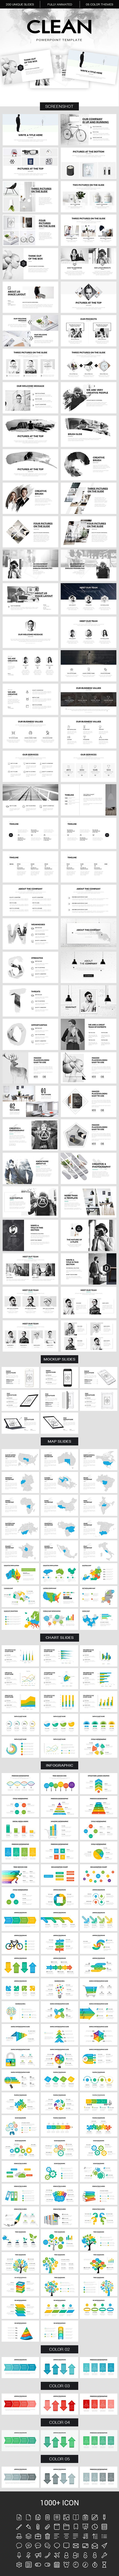 Clean Powerpoint Template. Download here: http://graphicriver.net/item/clean-powerpoint-template/15823762?ref=ksioks